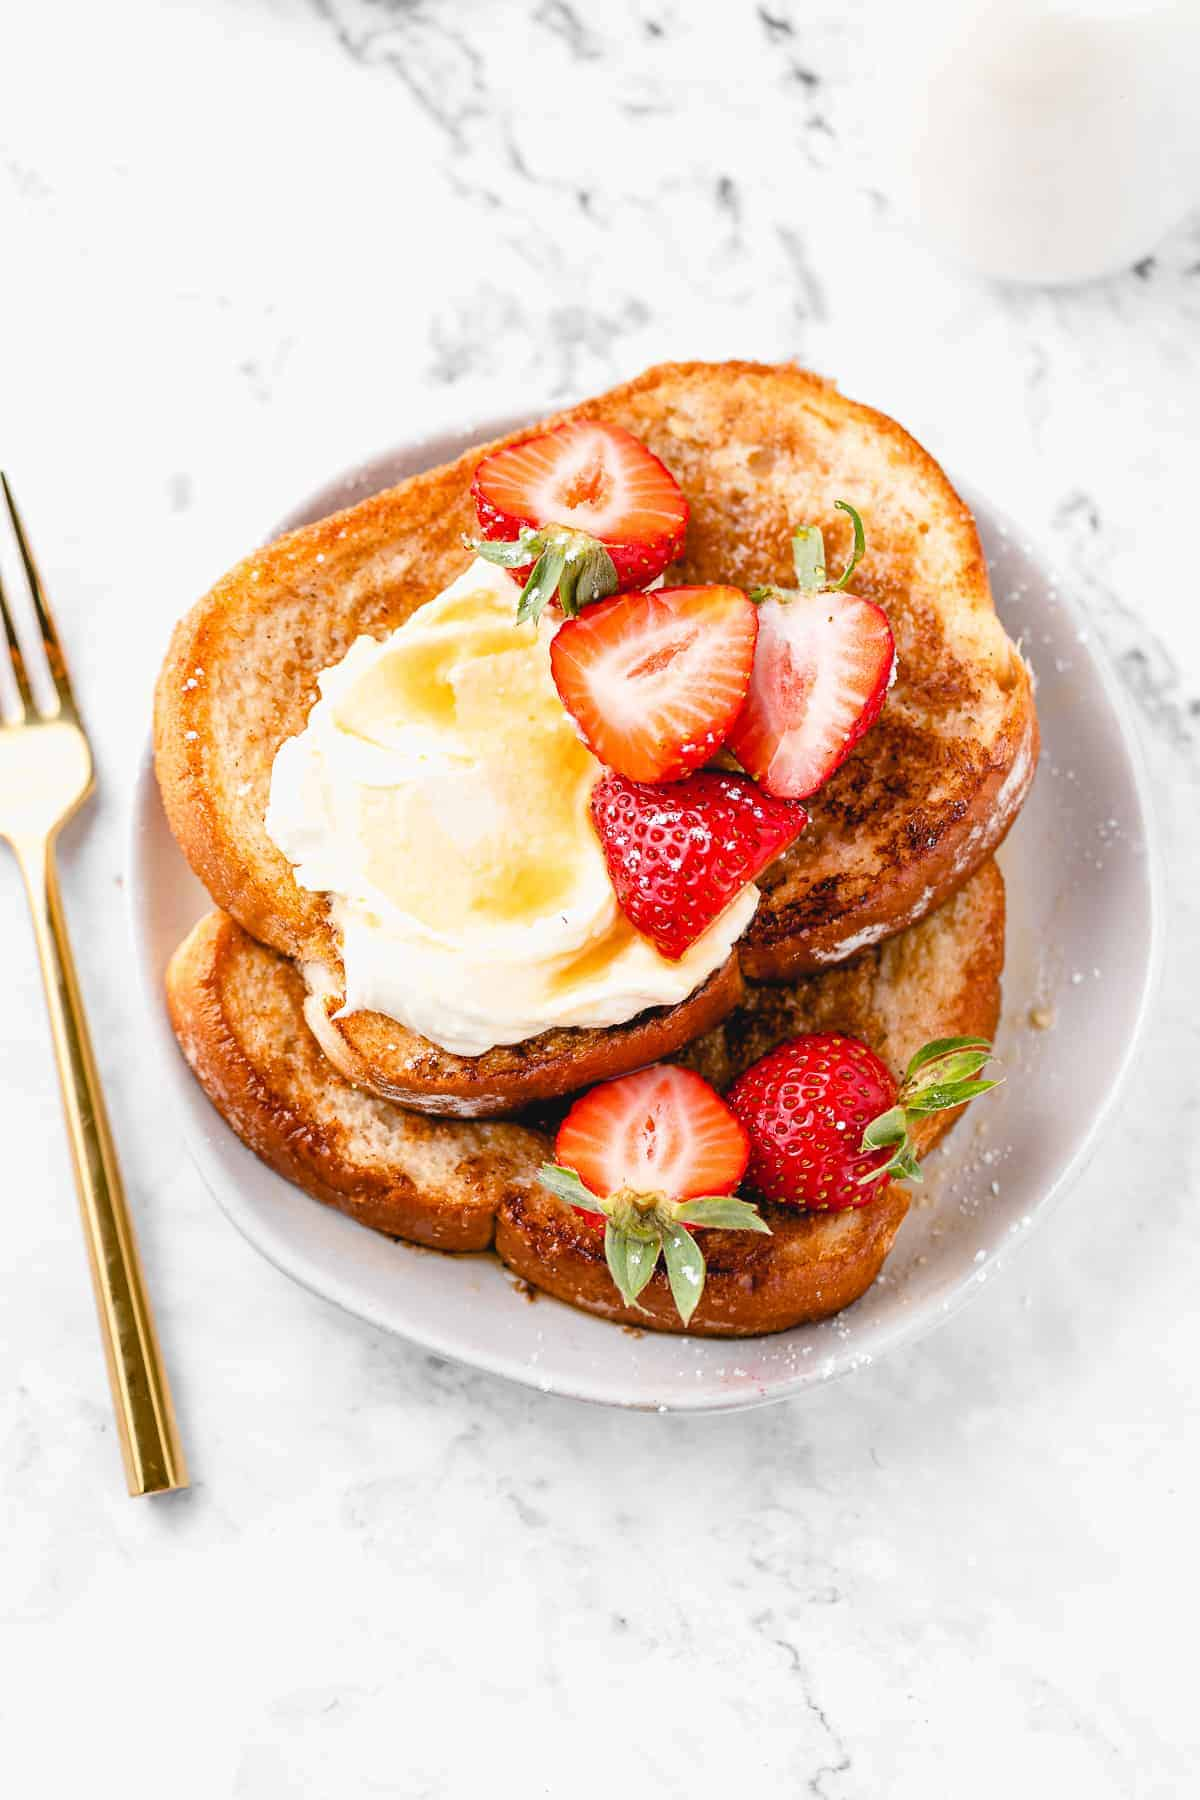 Plate of vegan french toast with strawberries.